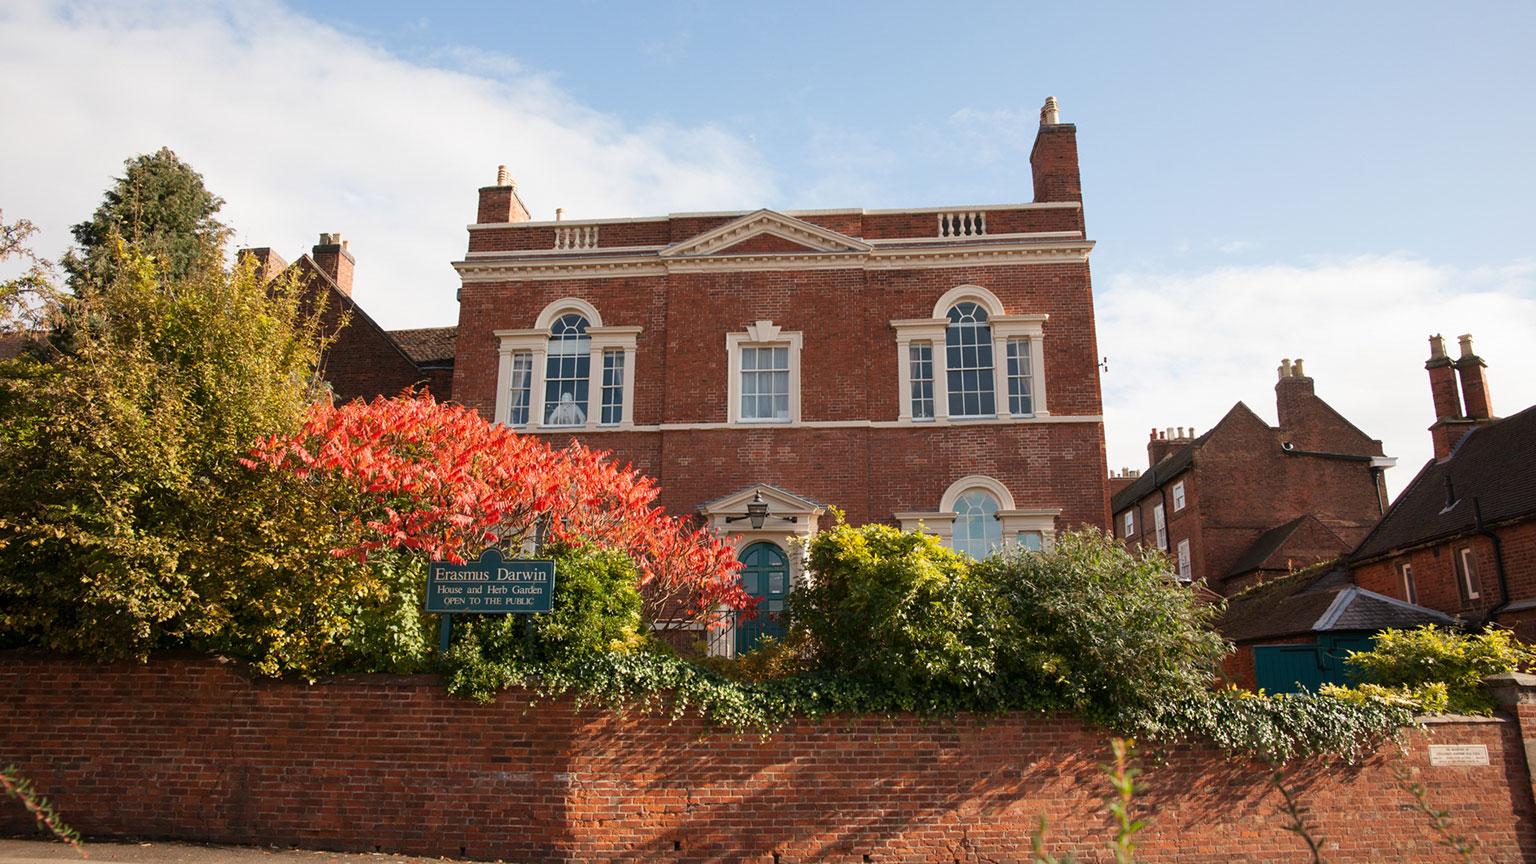 The home of Leading physician, scientist and inventor, Erasmus Darwin